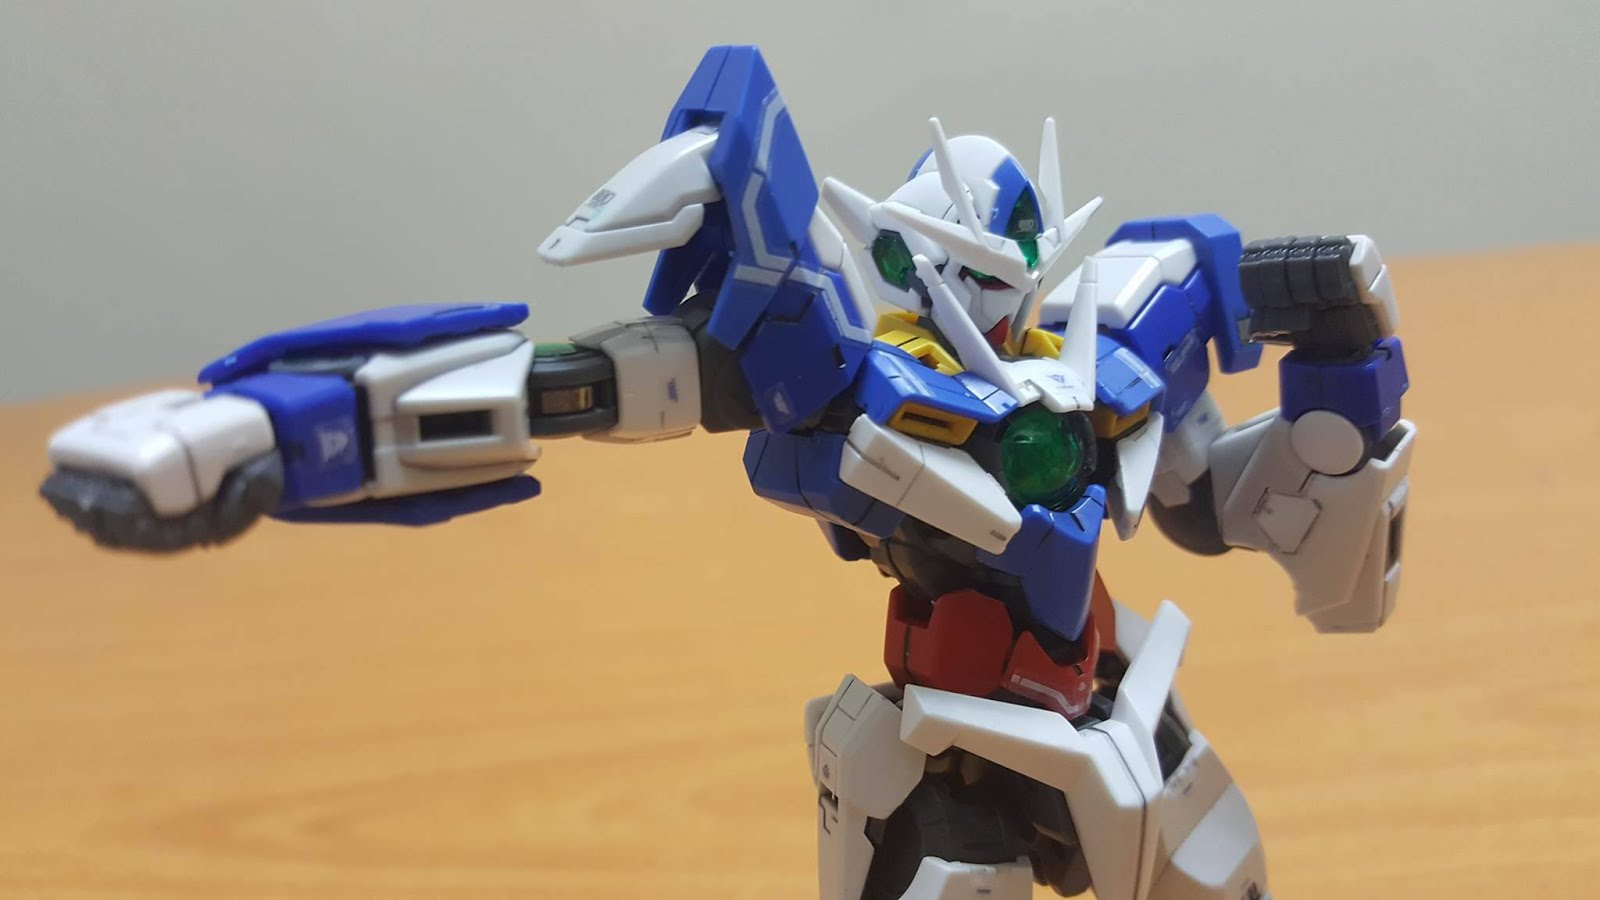 Rg 1 144 Gundam 00 Qant Review Blog Bandai Hgoo Gnt 0000 Qanta The Articulation For Is Damn Good And Also Rock Solid Usually I Personally Didnt Like Kit Its Fragile Ness But Qan T